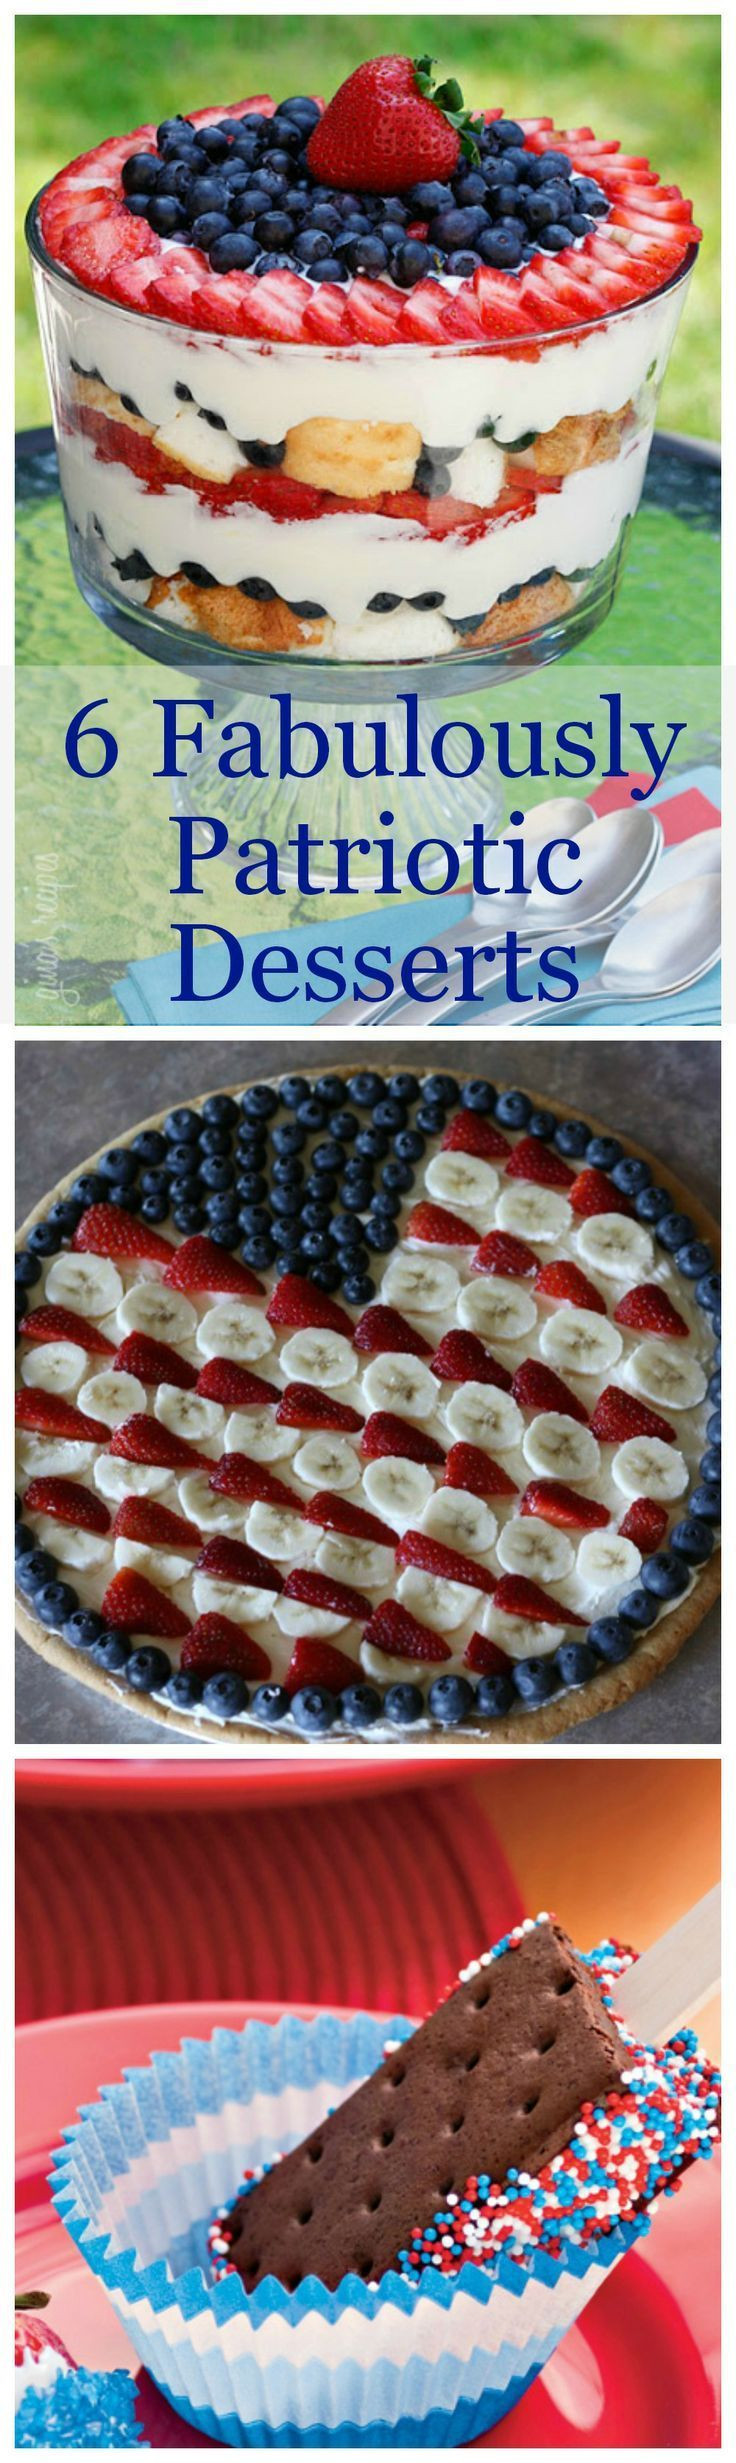 July 4 Desserts  10 best images about 4th of July on Pinterest